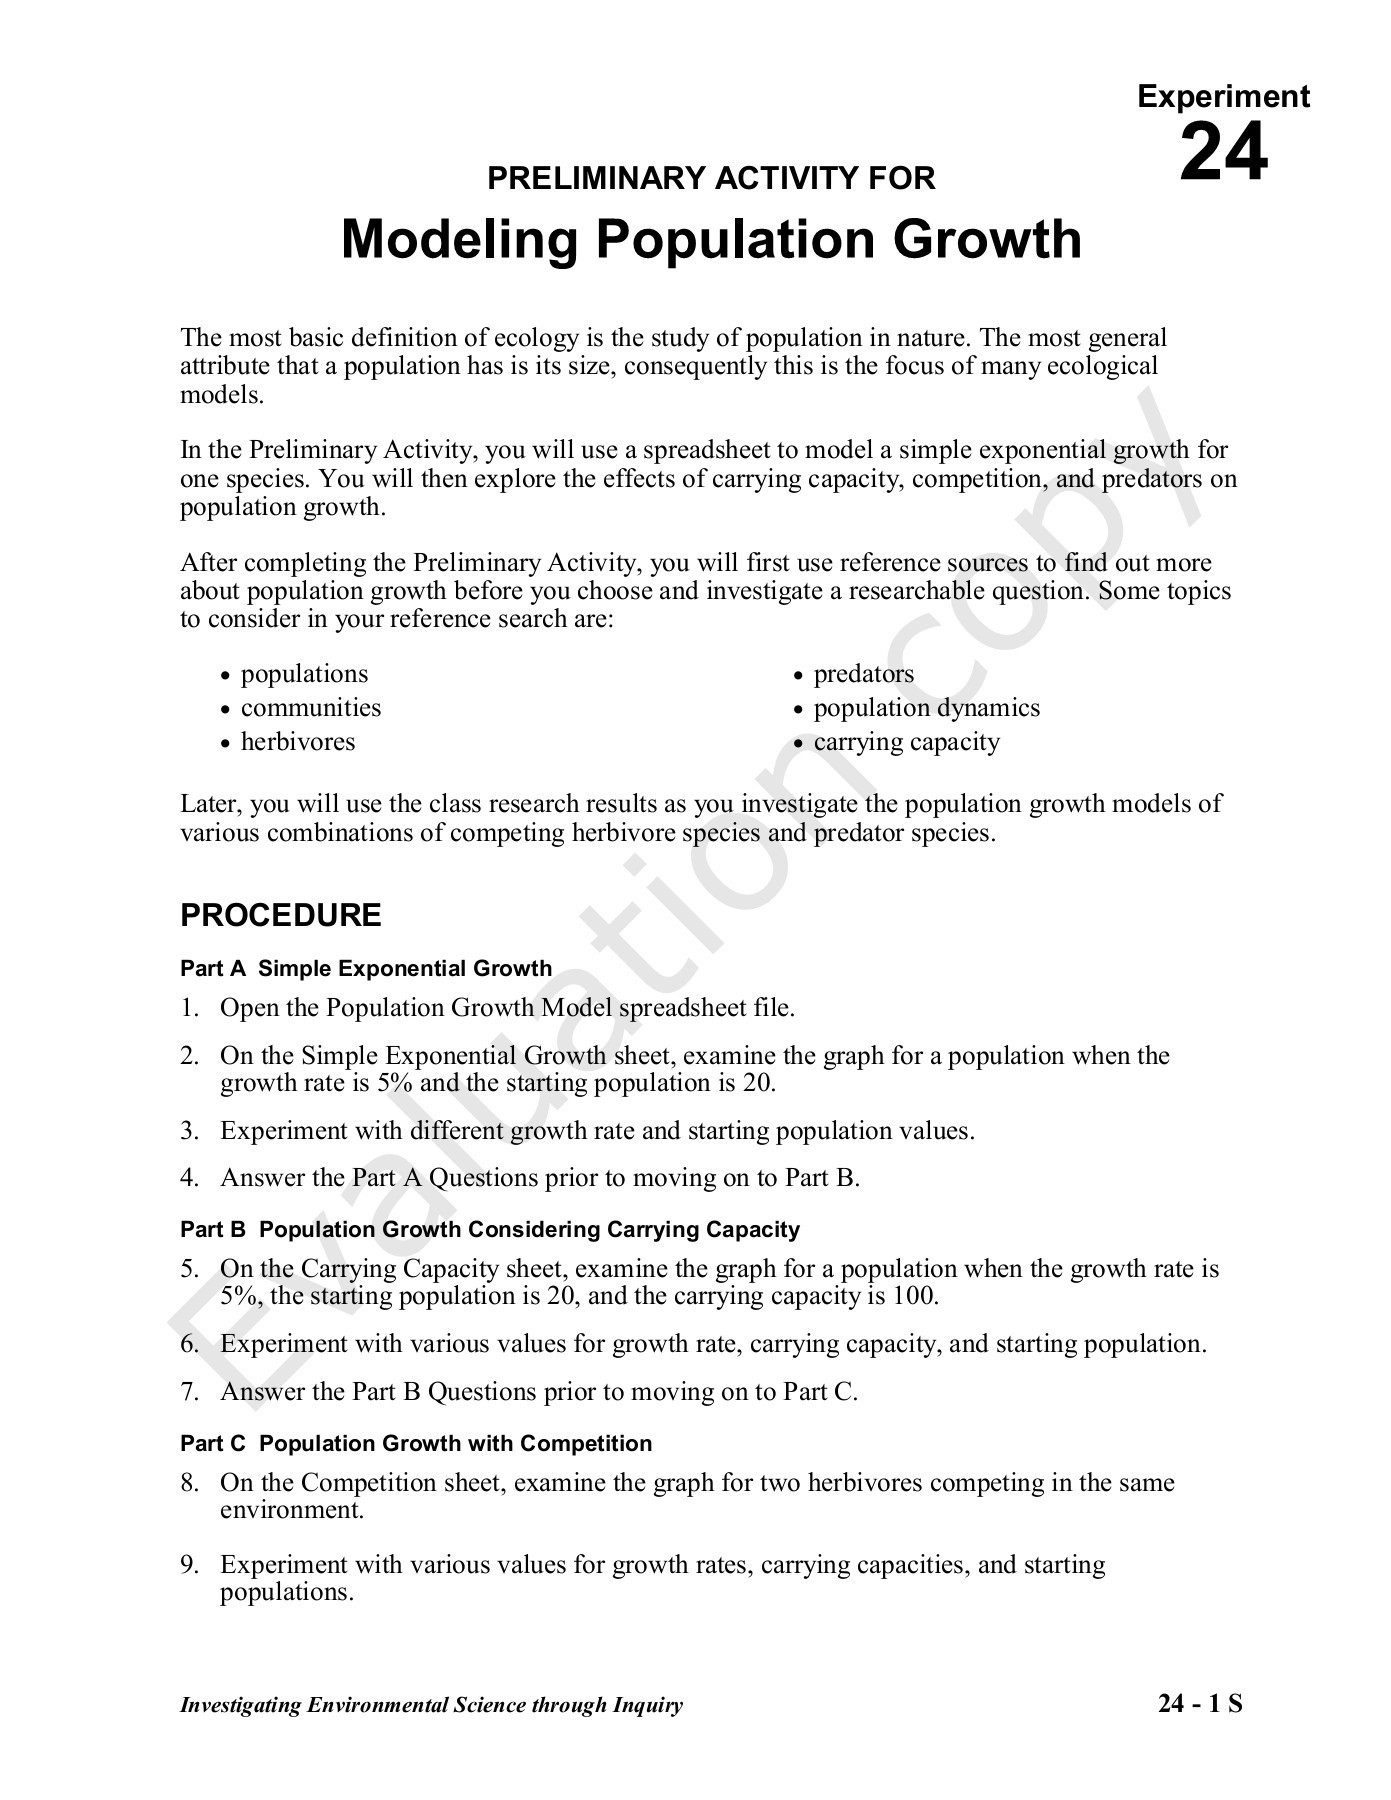 Population Growth Worksheet Answers Preliminary Activity for Modeling Population Growth Pages 1